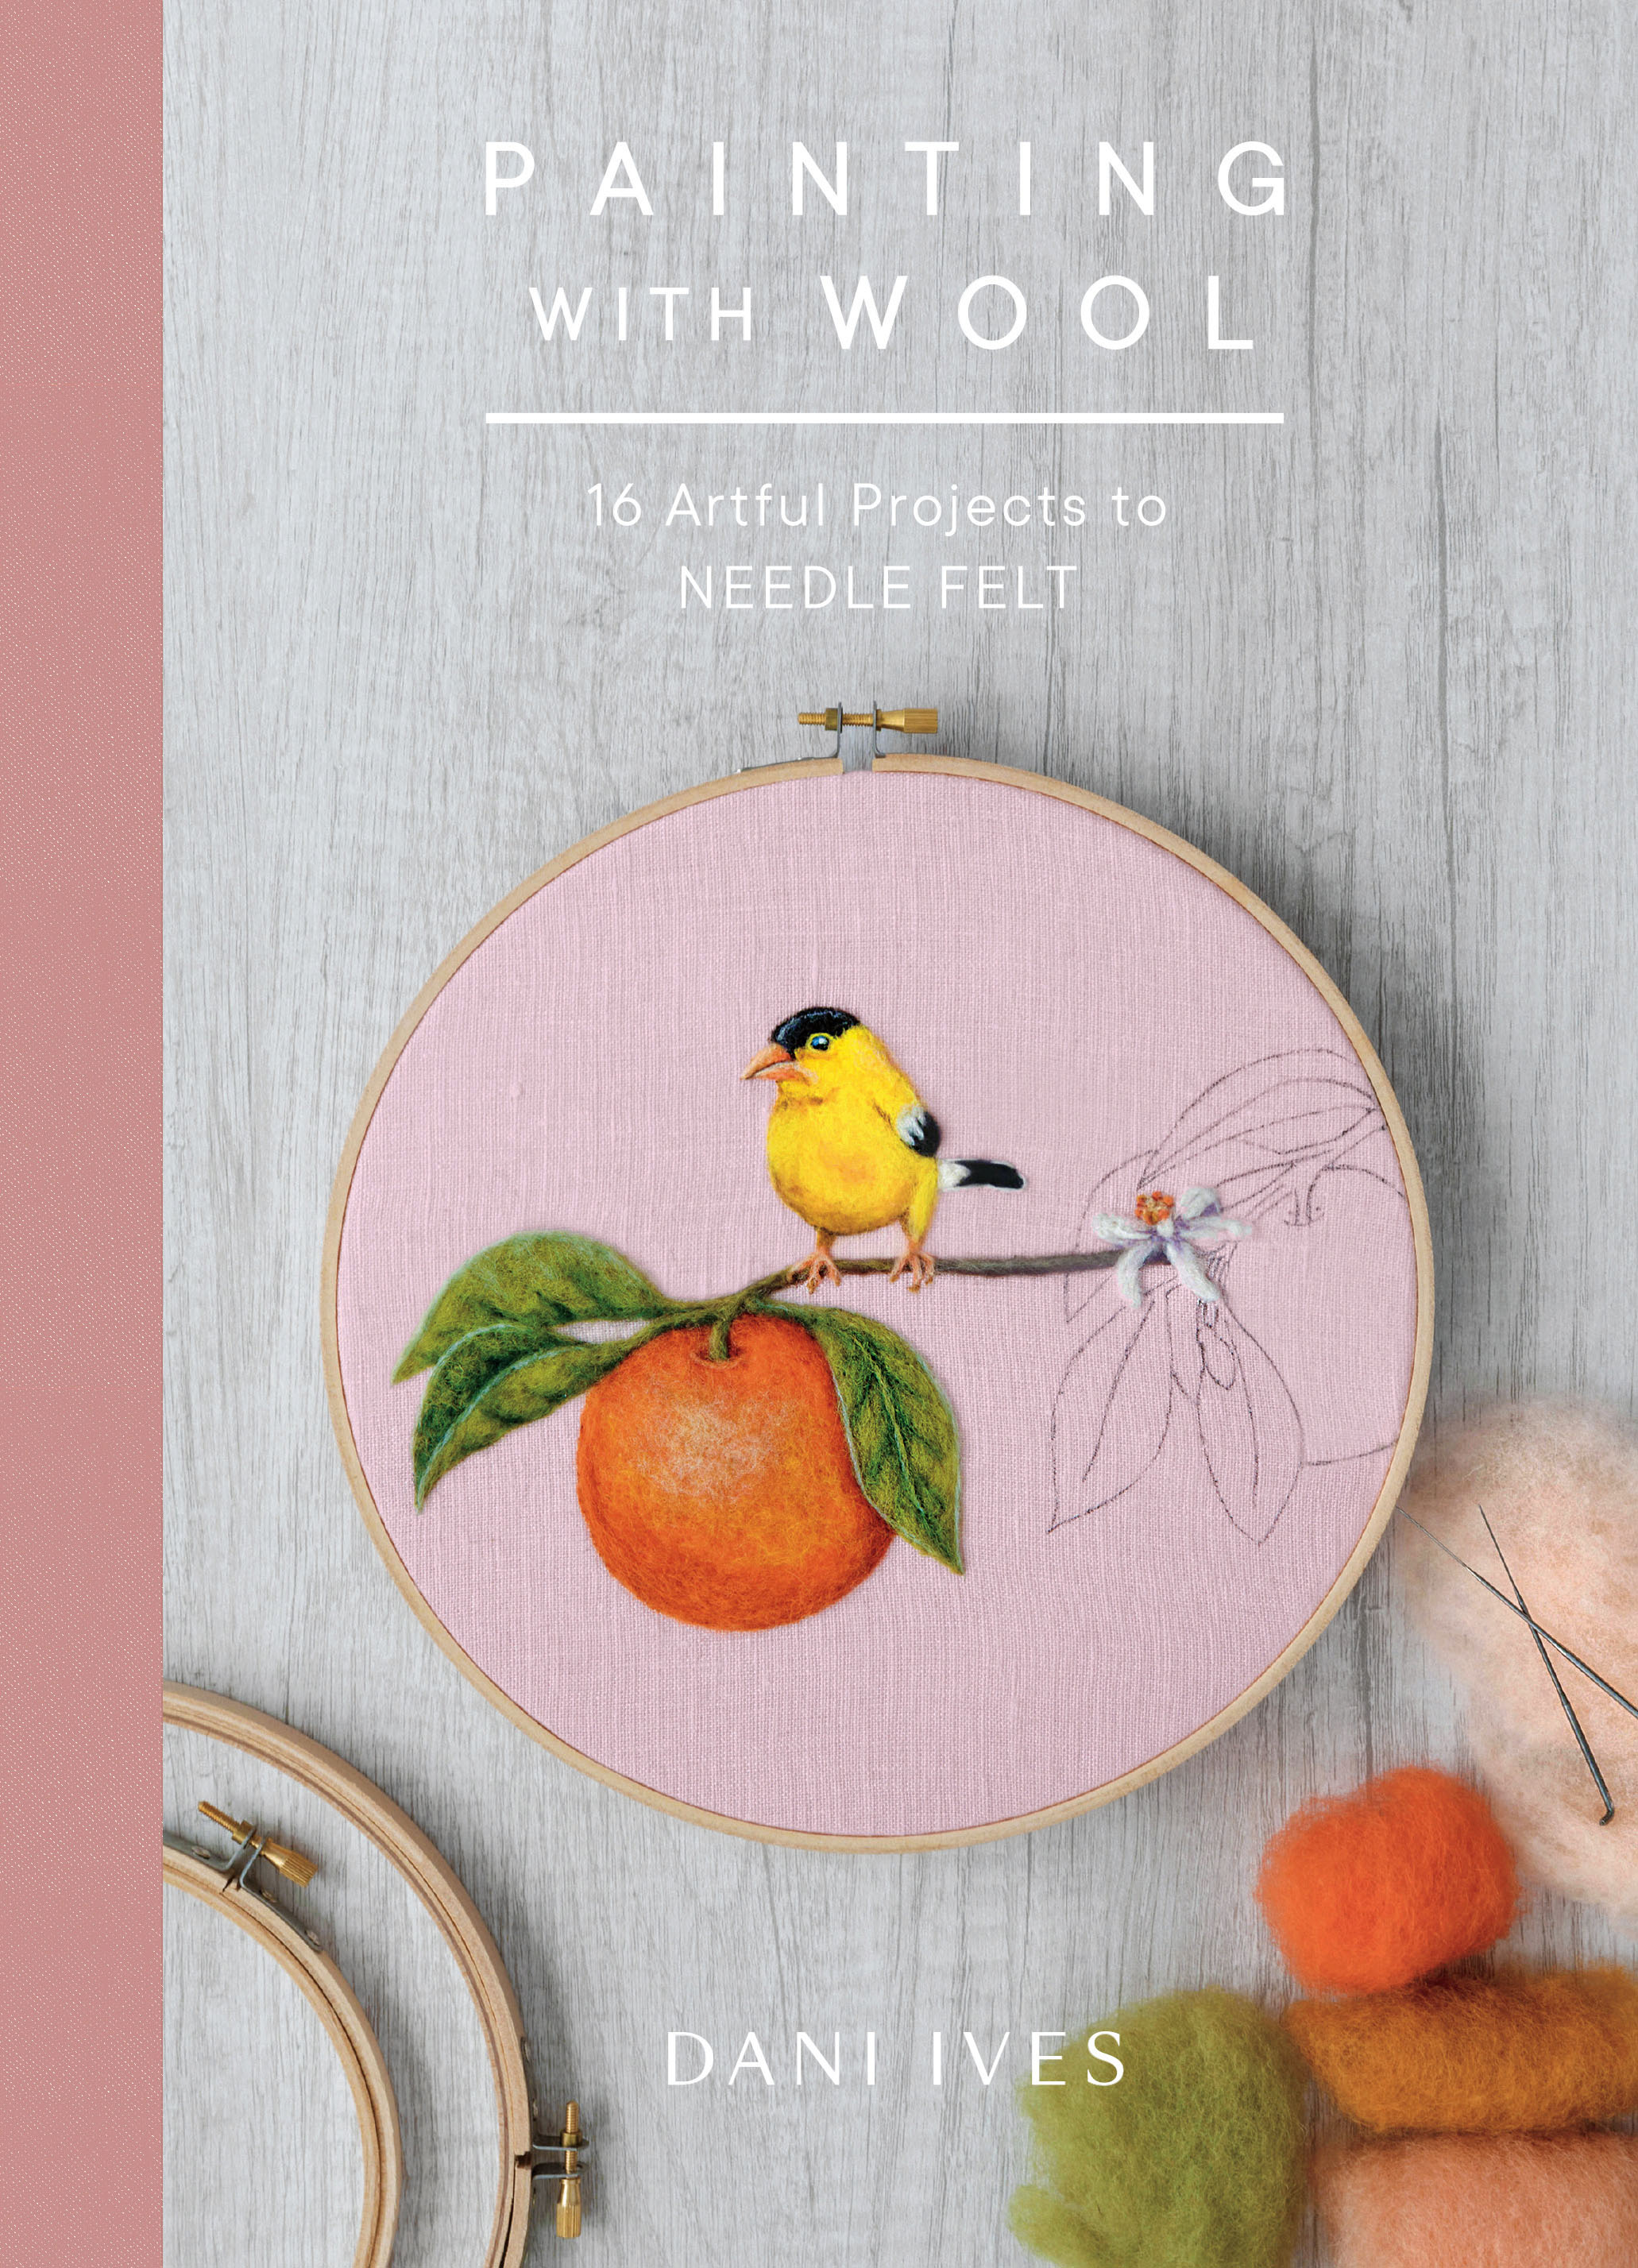 Painting with wool - 16 artful projects to needle felt